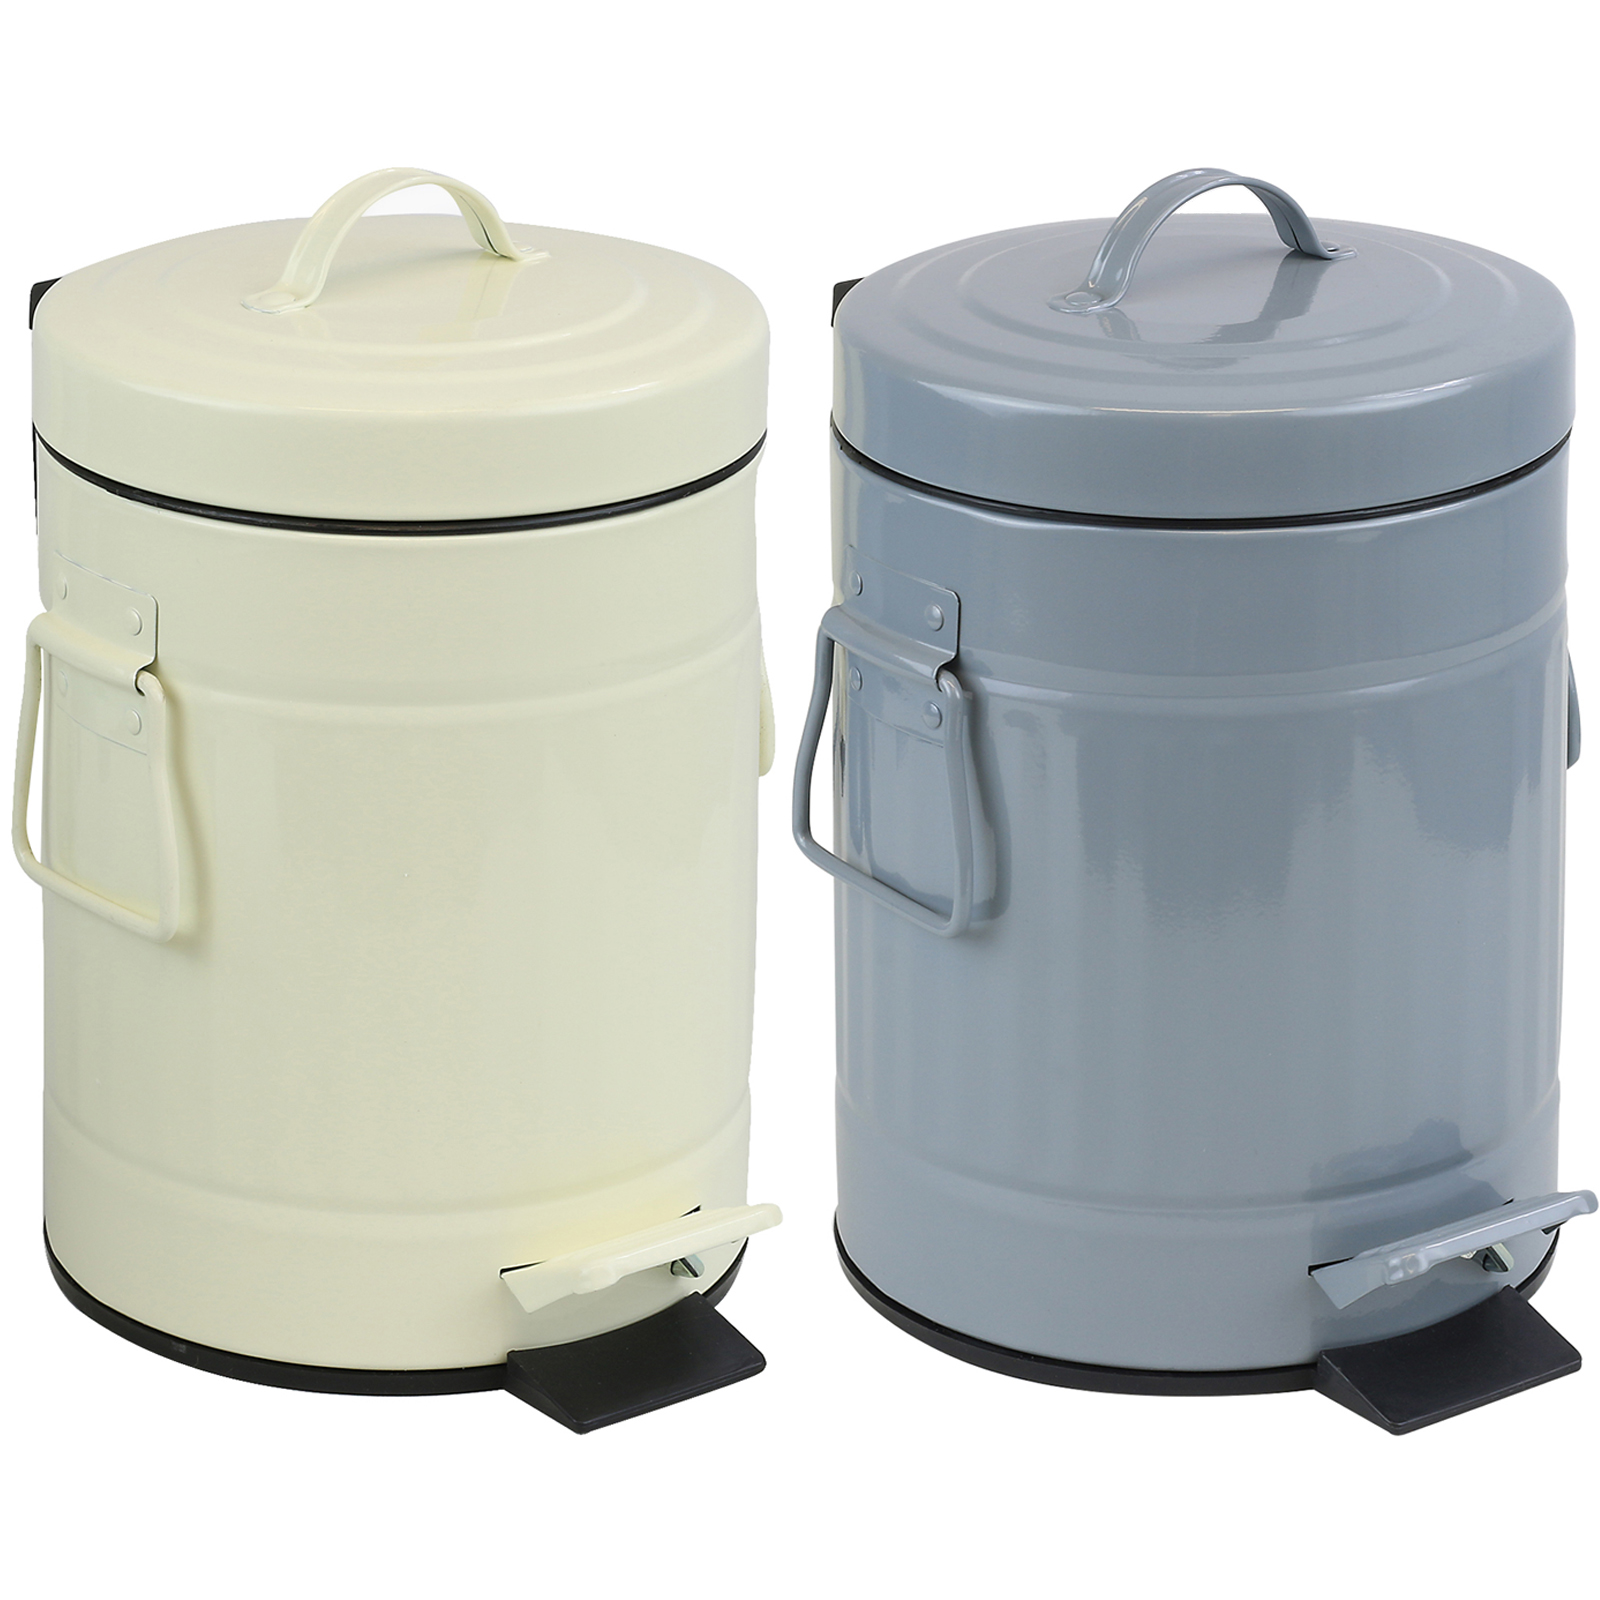 Small Bathroom Bin - Sentinel small metal pedal bin retro dustbin 3 litre bathroom toilet office waste rubbish